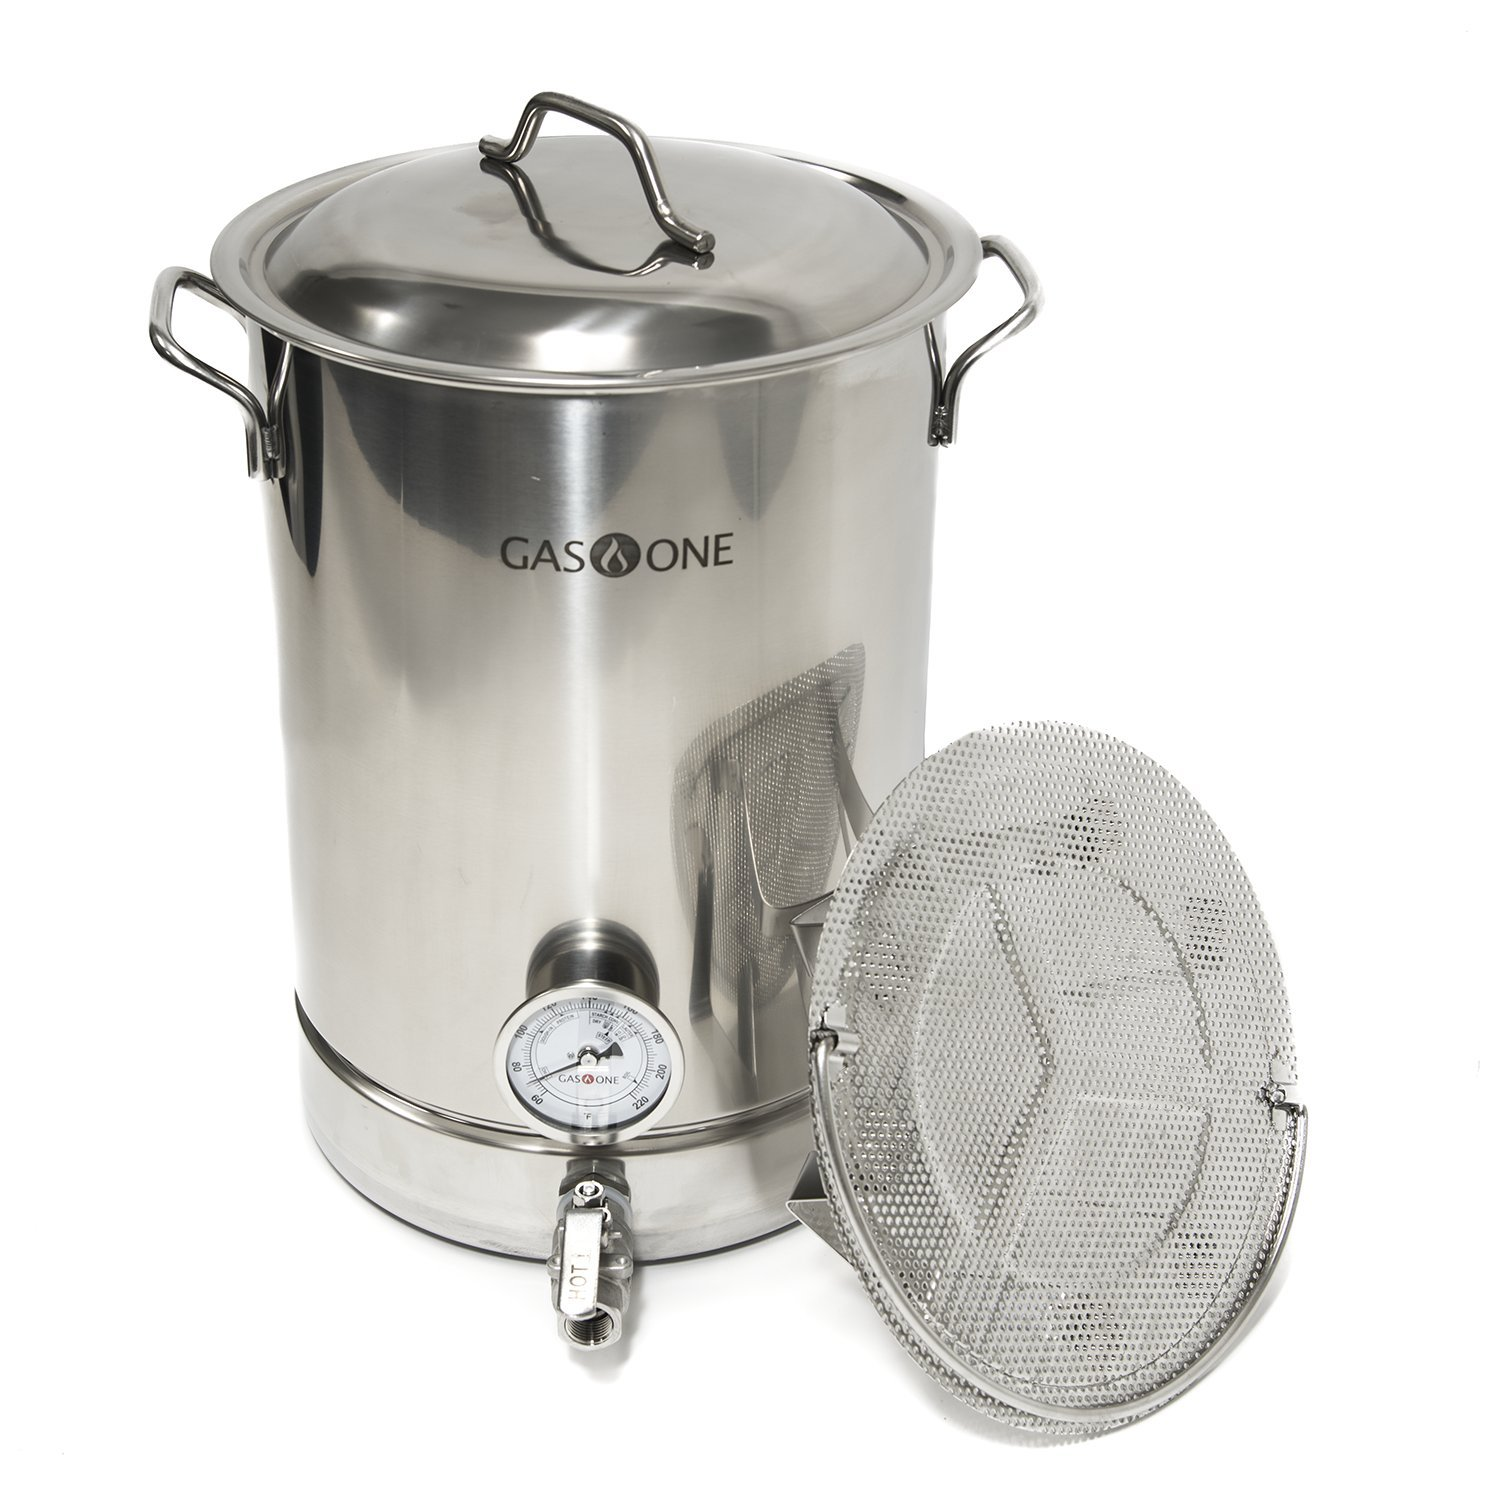 GasOne 8 gallon Stainless Steel Home Brew Pot Brew Kettle Set 32 Quart filtration & TRI PLY Bottom for Beer Brewing Includes Lid Ball valve Thermometer False bottom Mesh Tube tool Complete Kit